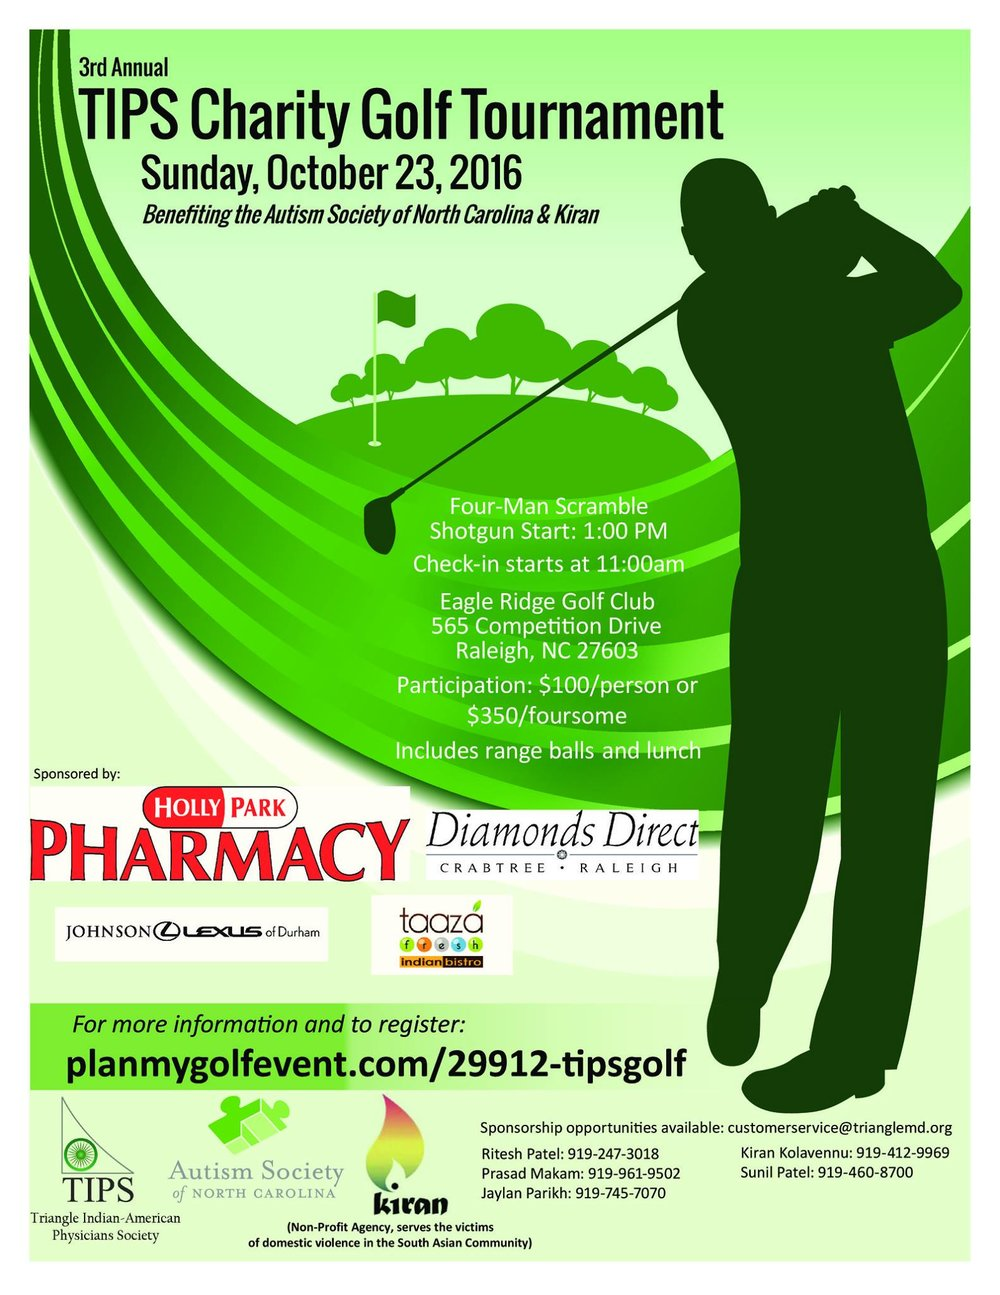 TIPS Golf event flyer(1).jpg